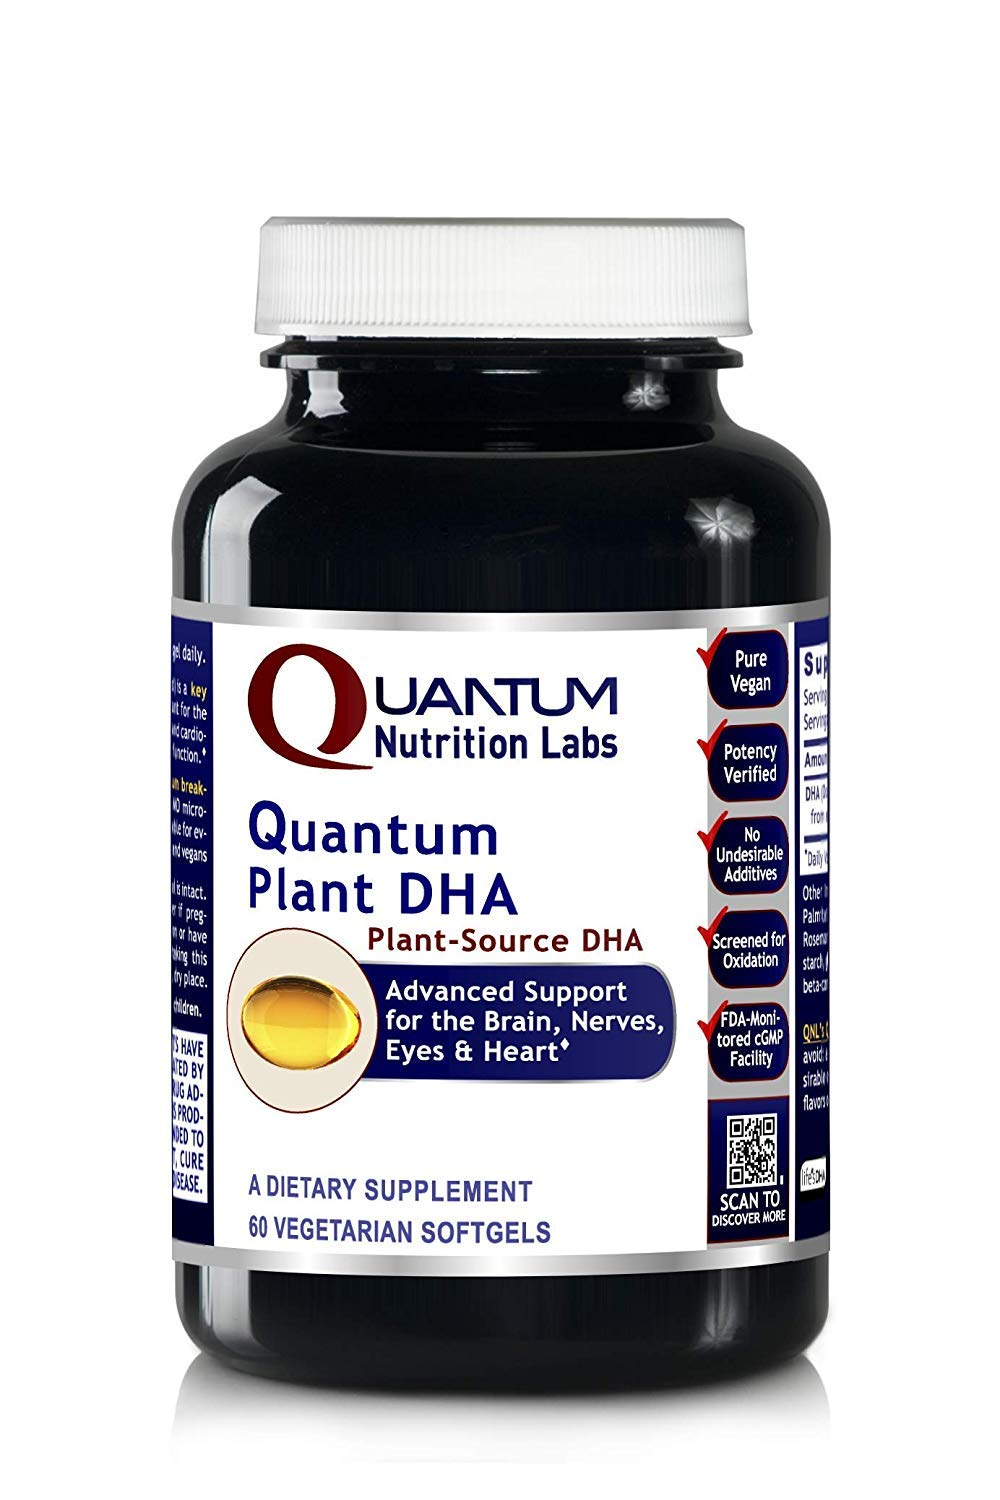 Quantum Plant DHA, 180 Vegan Softgels - Plant-Source DHA for Quantum-State Support for The Brain, Nerves, Eyes and Heart